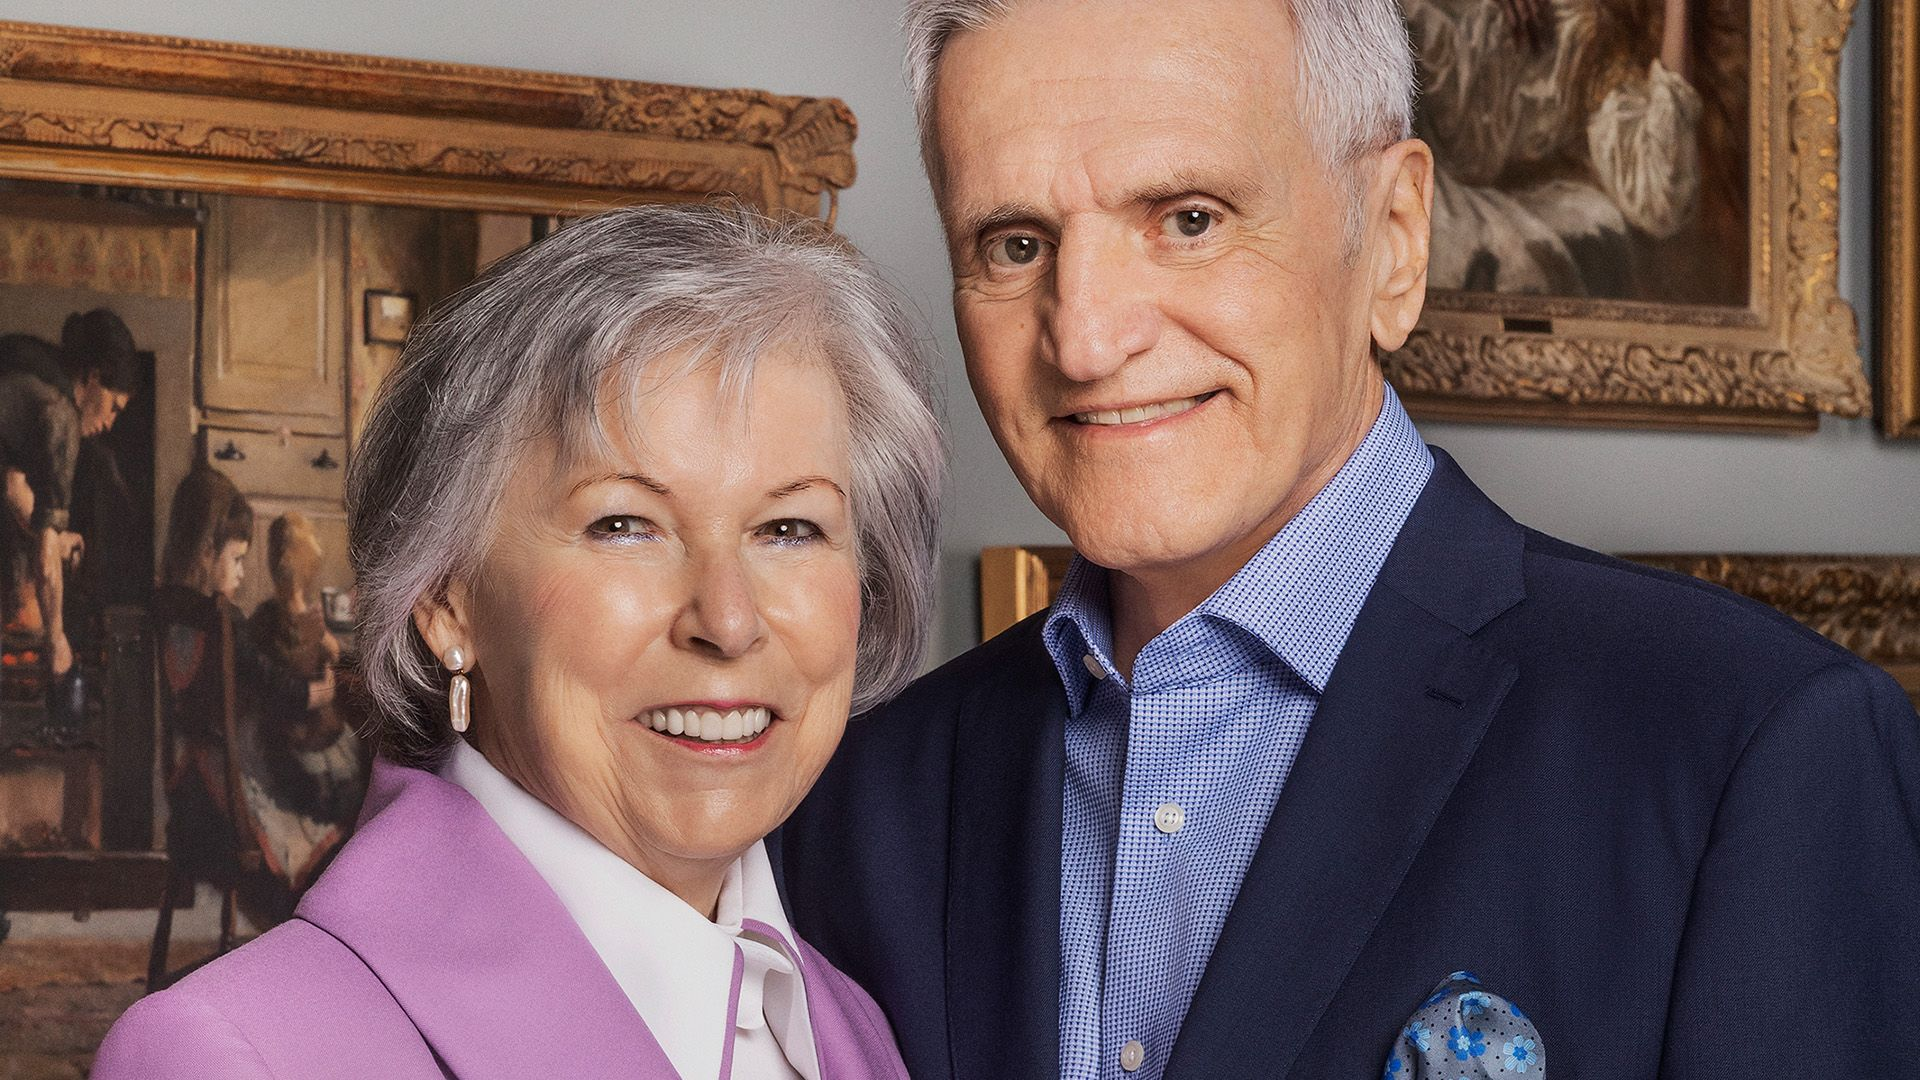 Micheline and Claude, donors since 2005